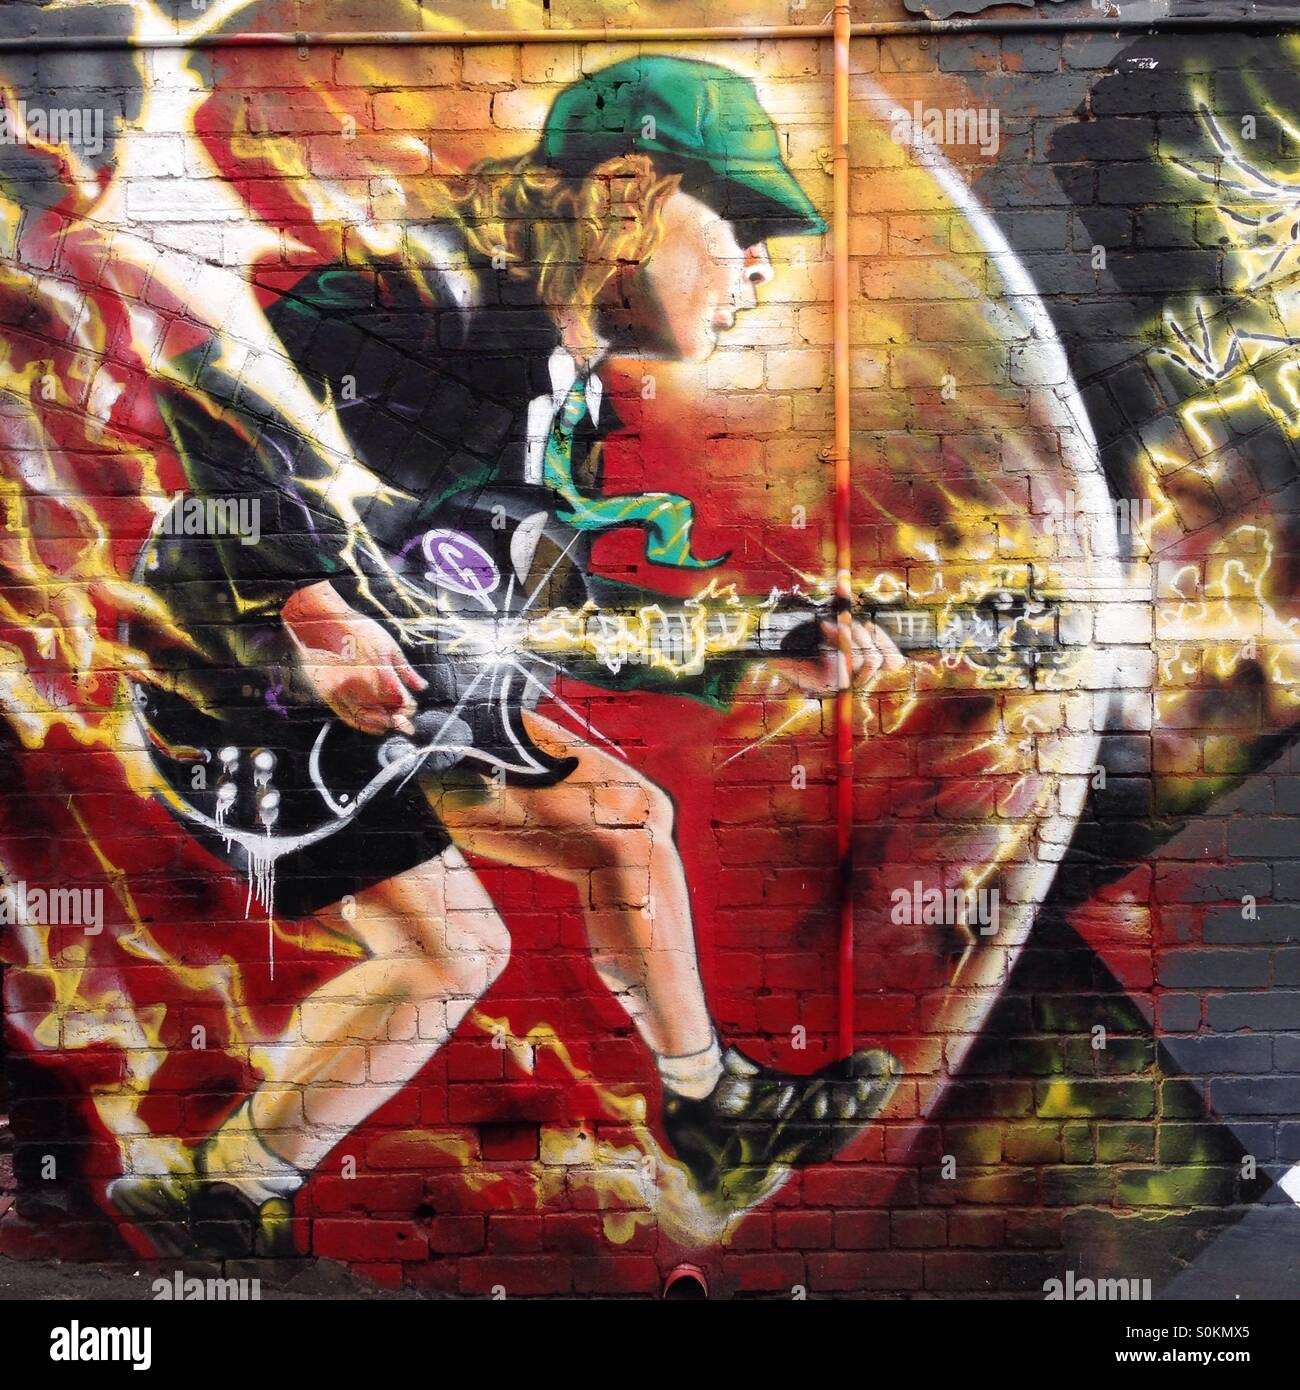 Ac Dc Art : Street art of angus young acdc band in lane